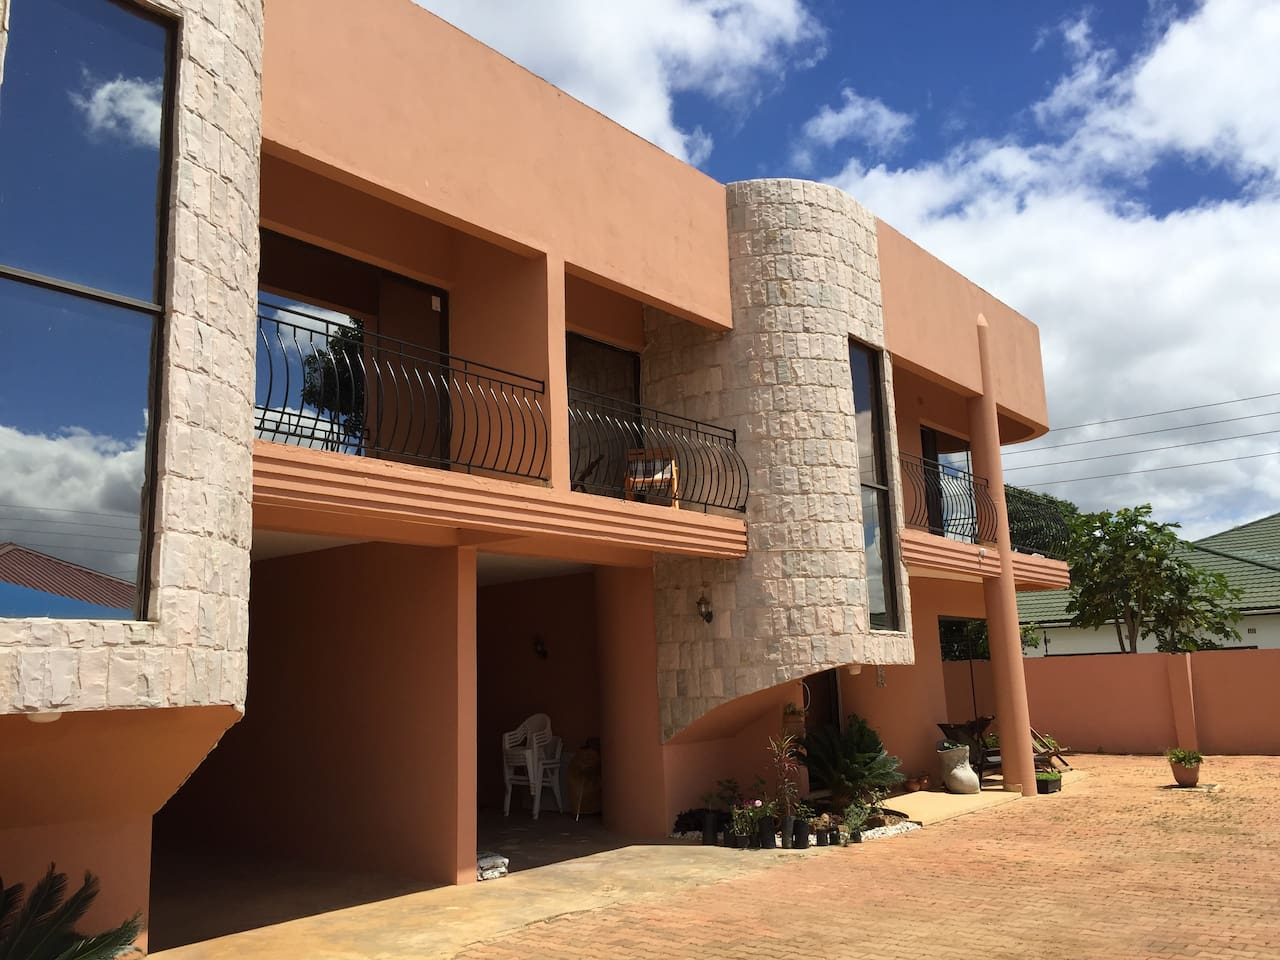 Beautiful modern 4 bedroom apartments off Kafue Rd very close to shopping malls and minutes from Town. All modern conveniences available.